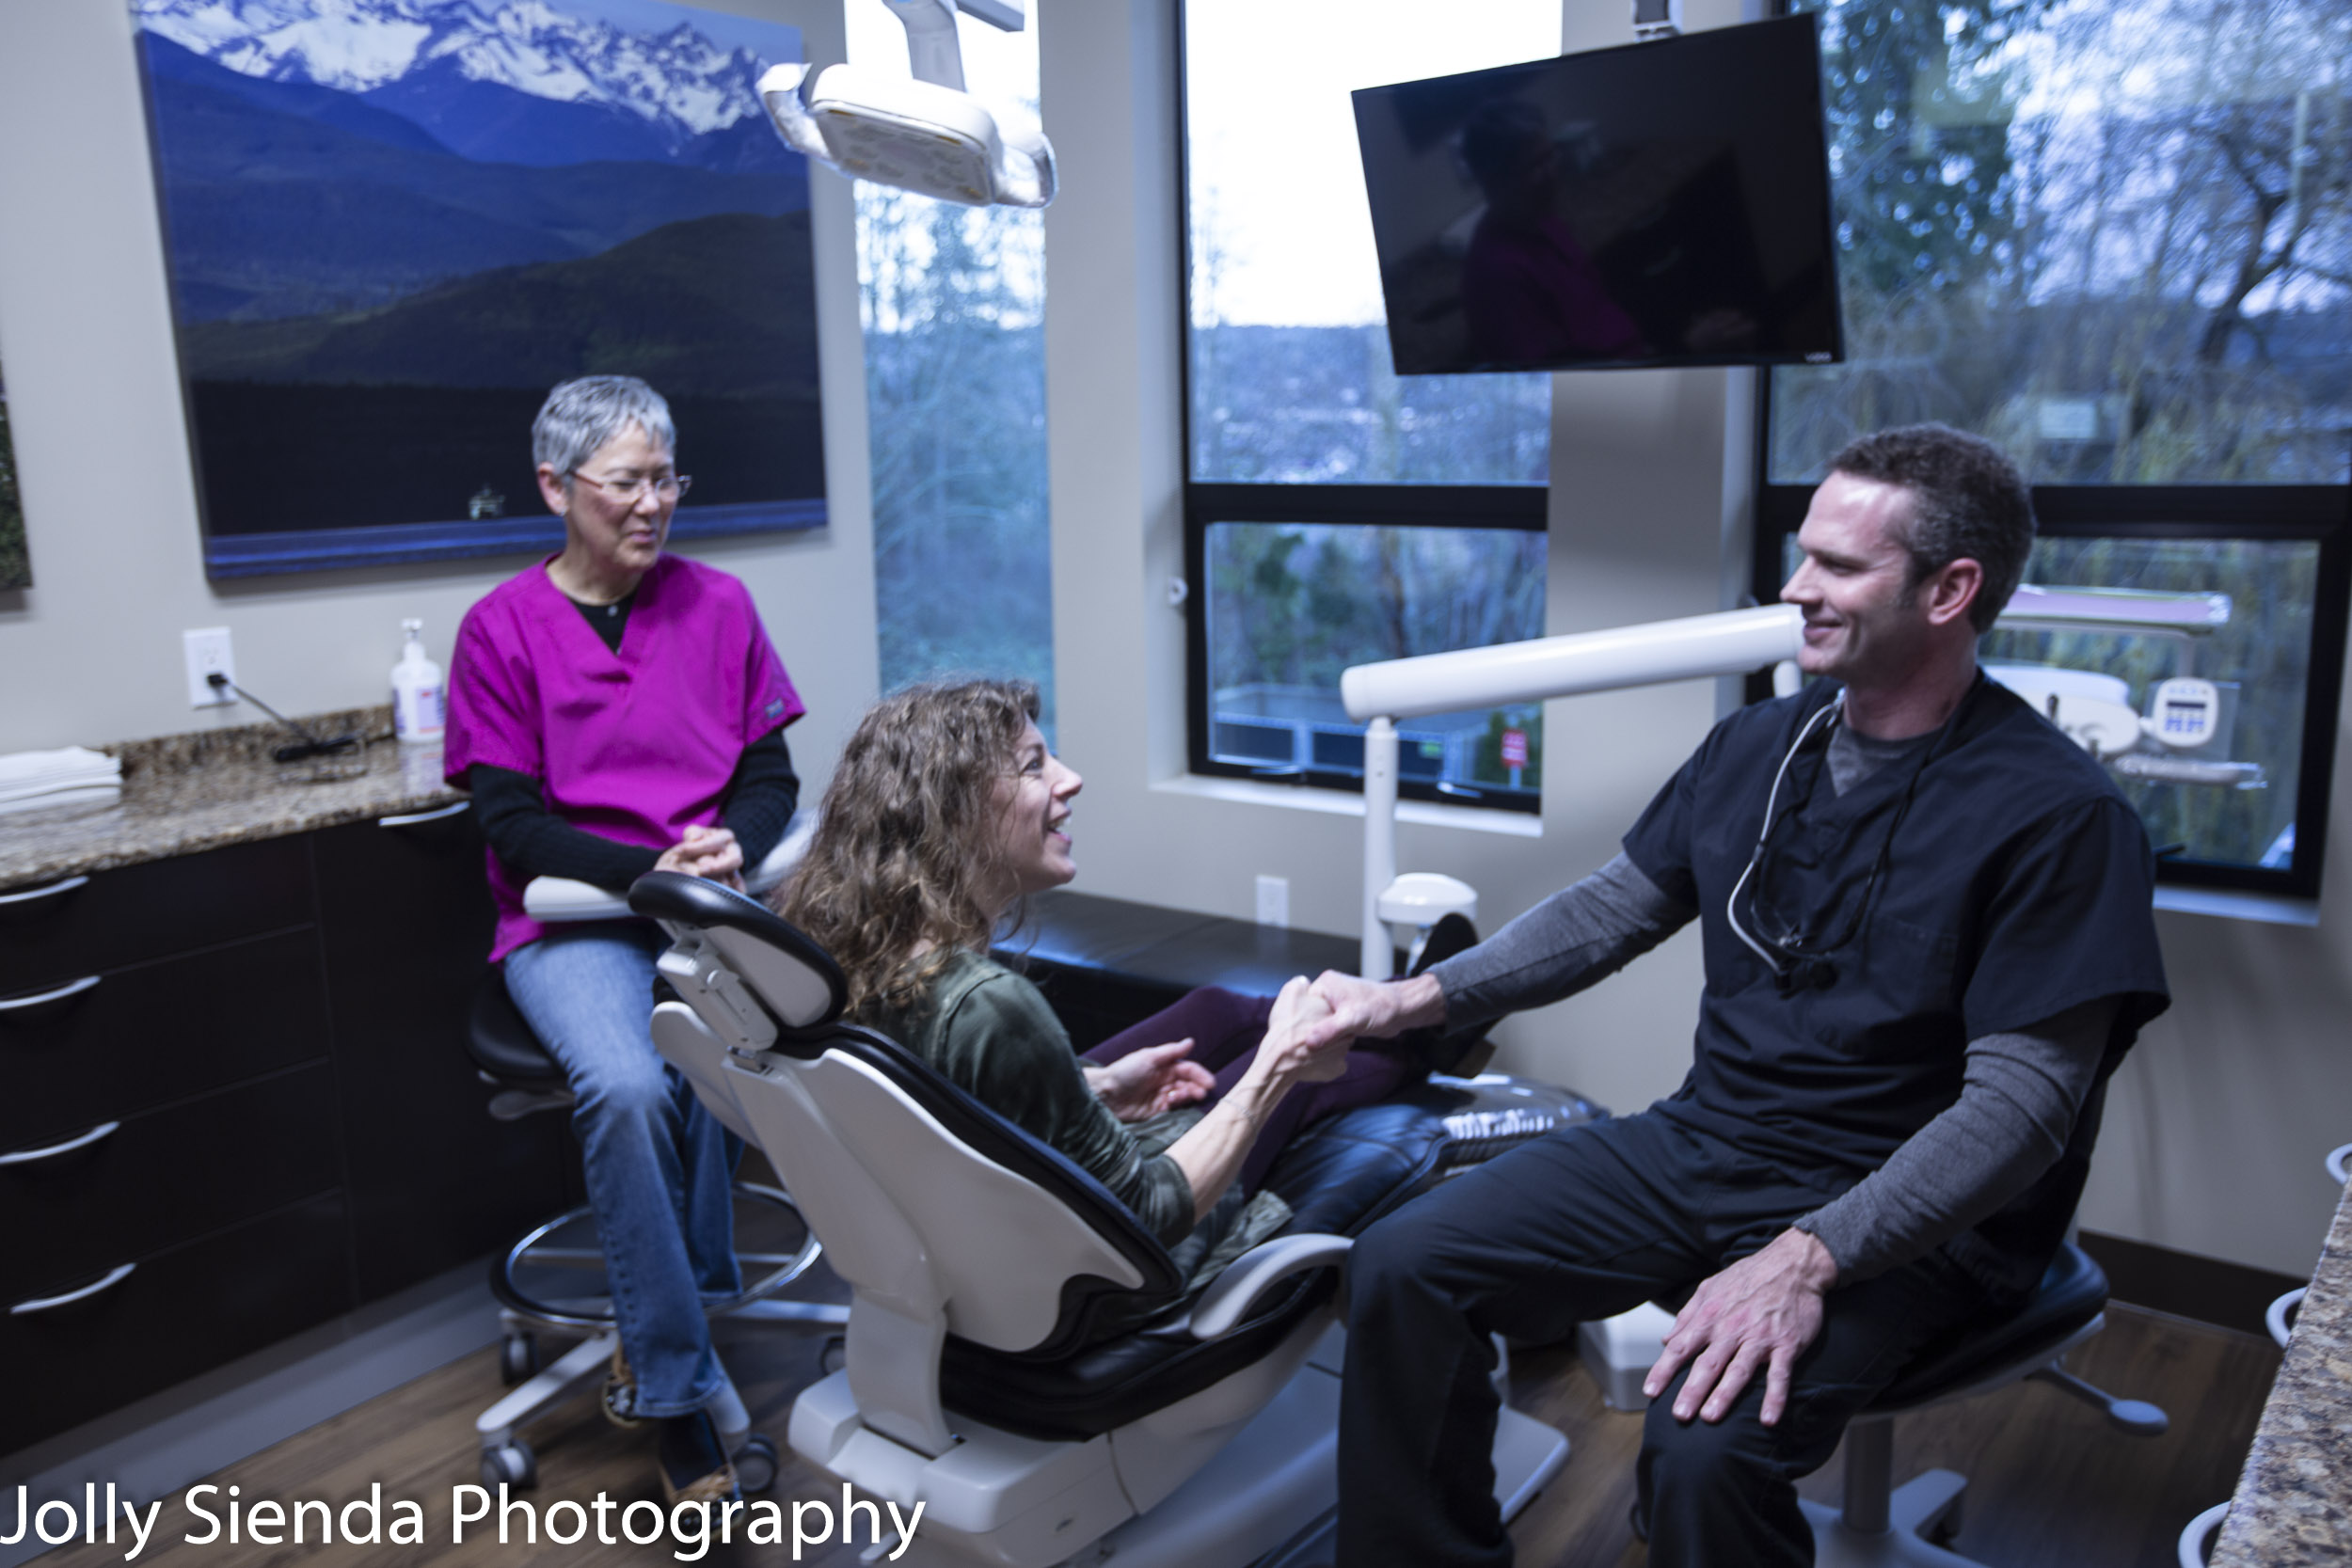 Dr. Matthew Pollard greets a patient at Pollard Dental, Silverdale, Washington.